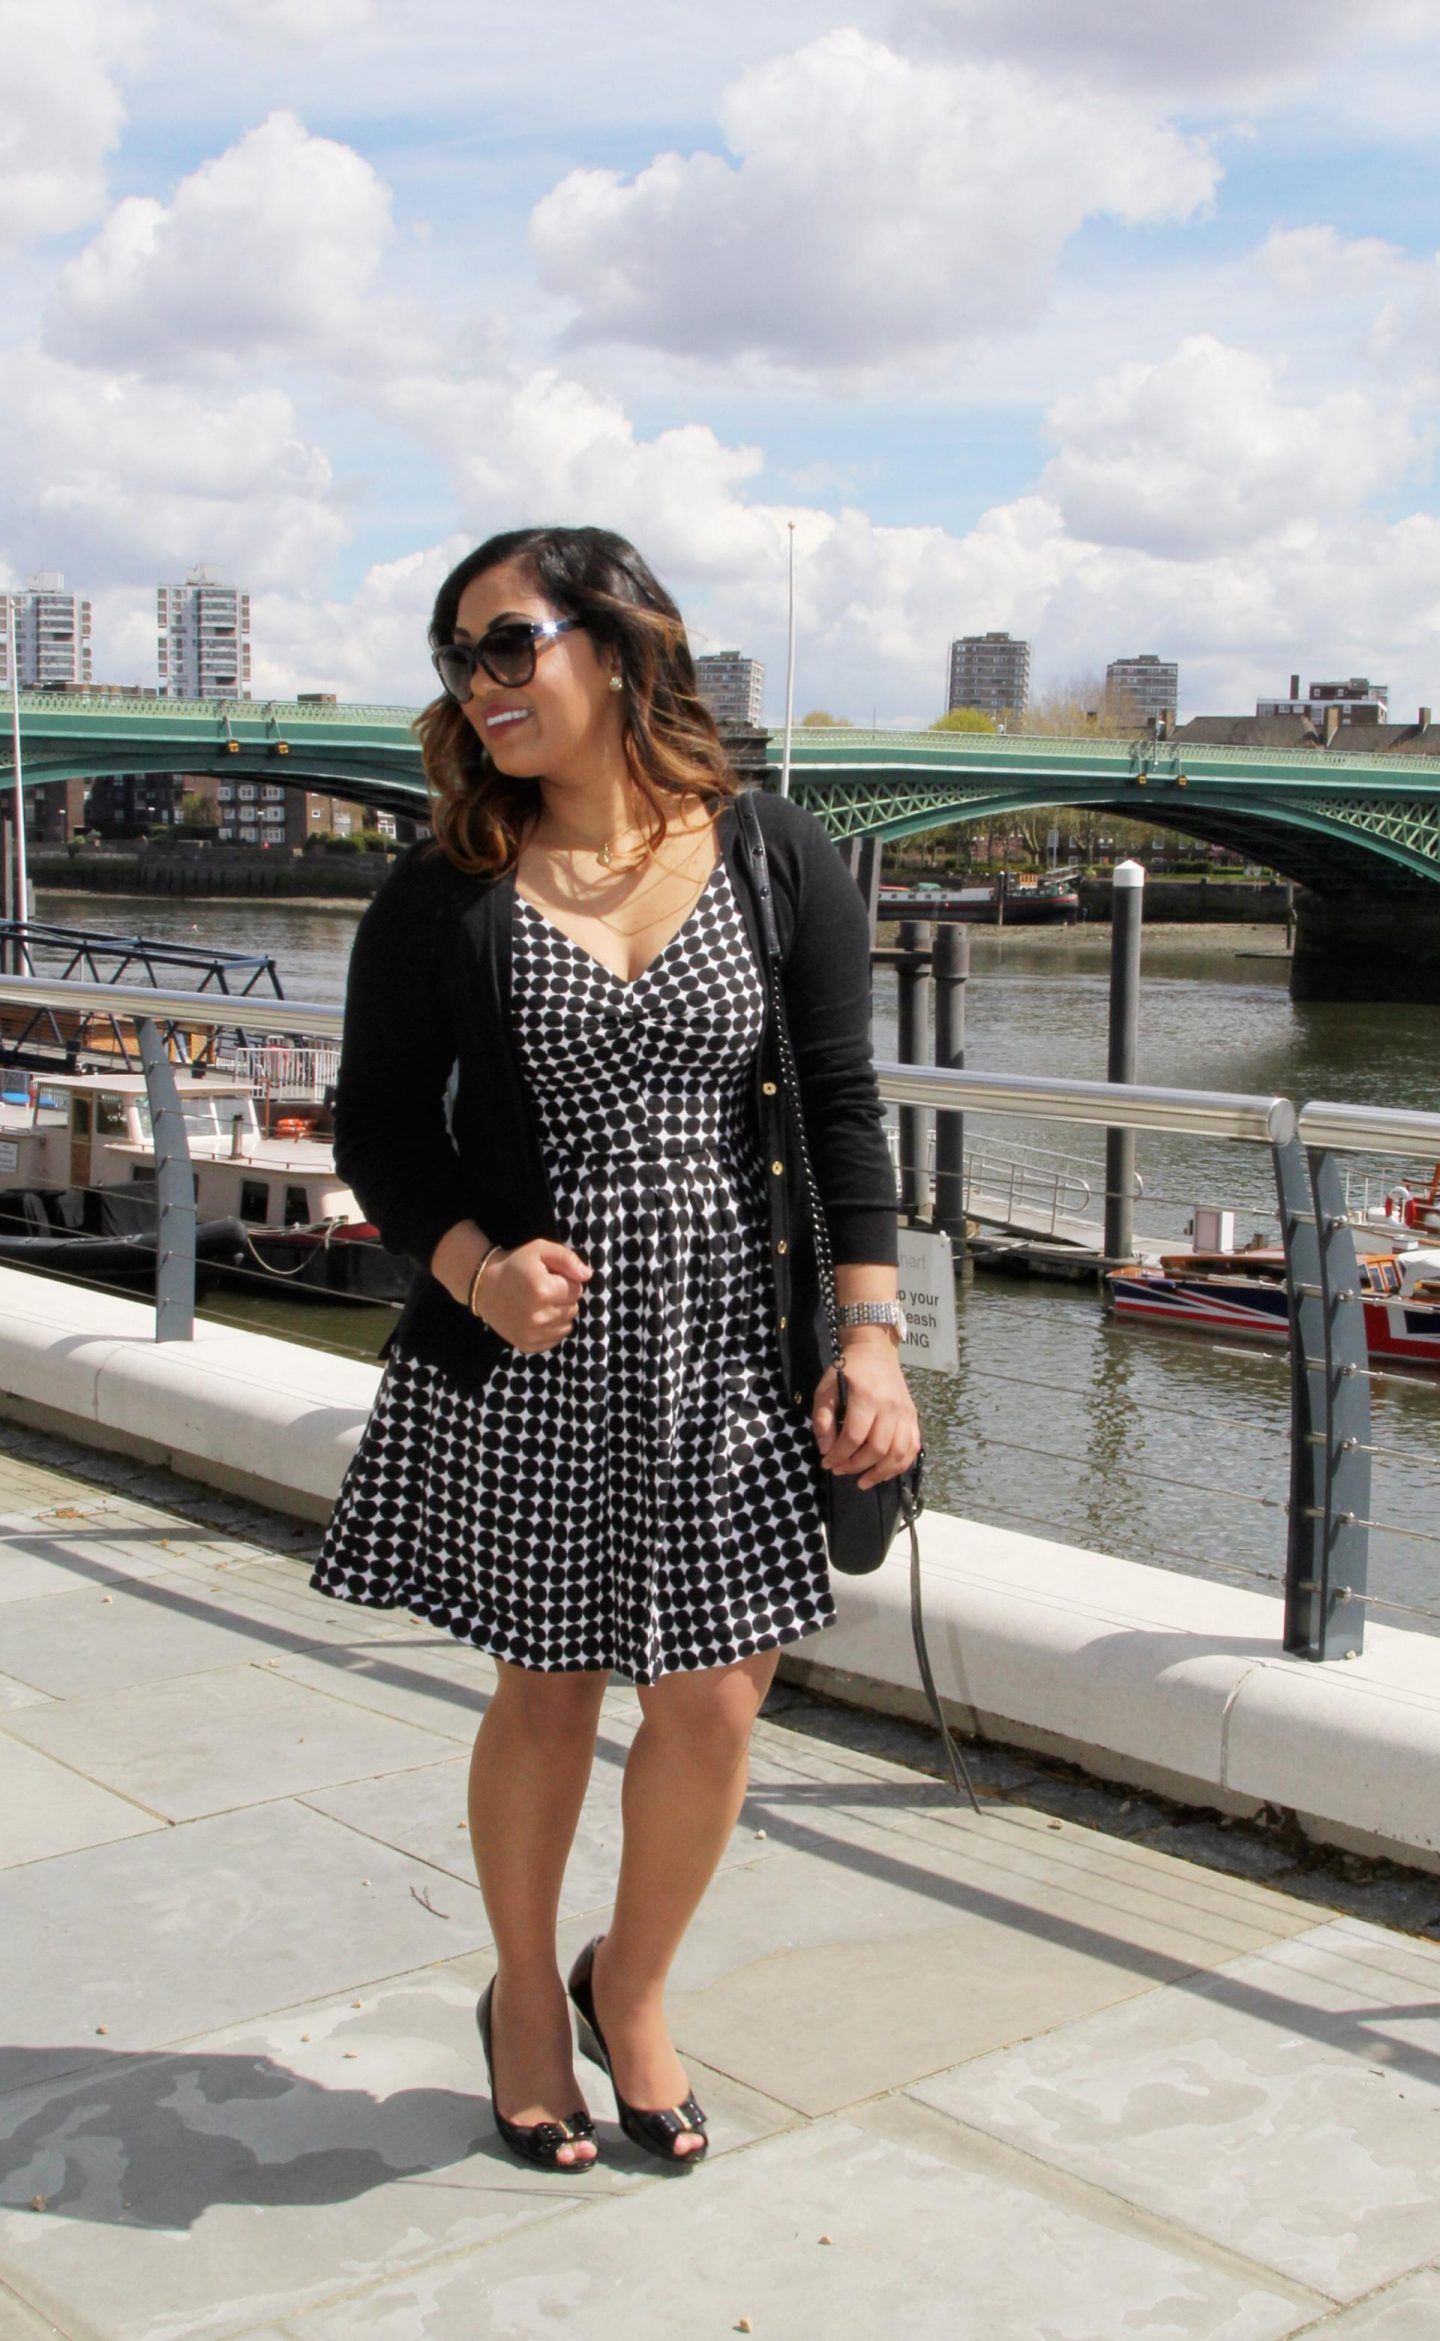 Black and White Summer Polka Dots